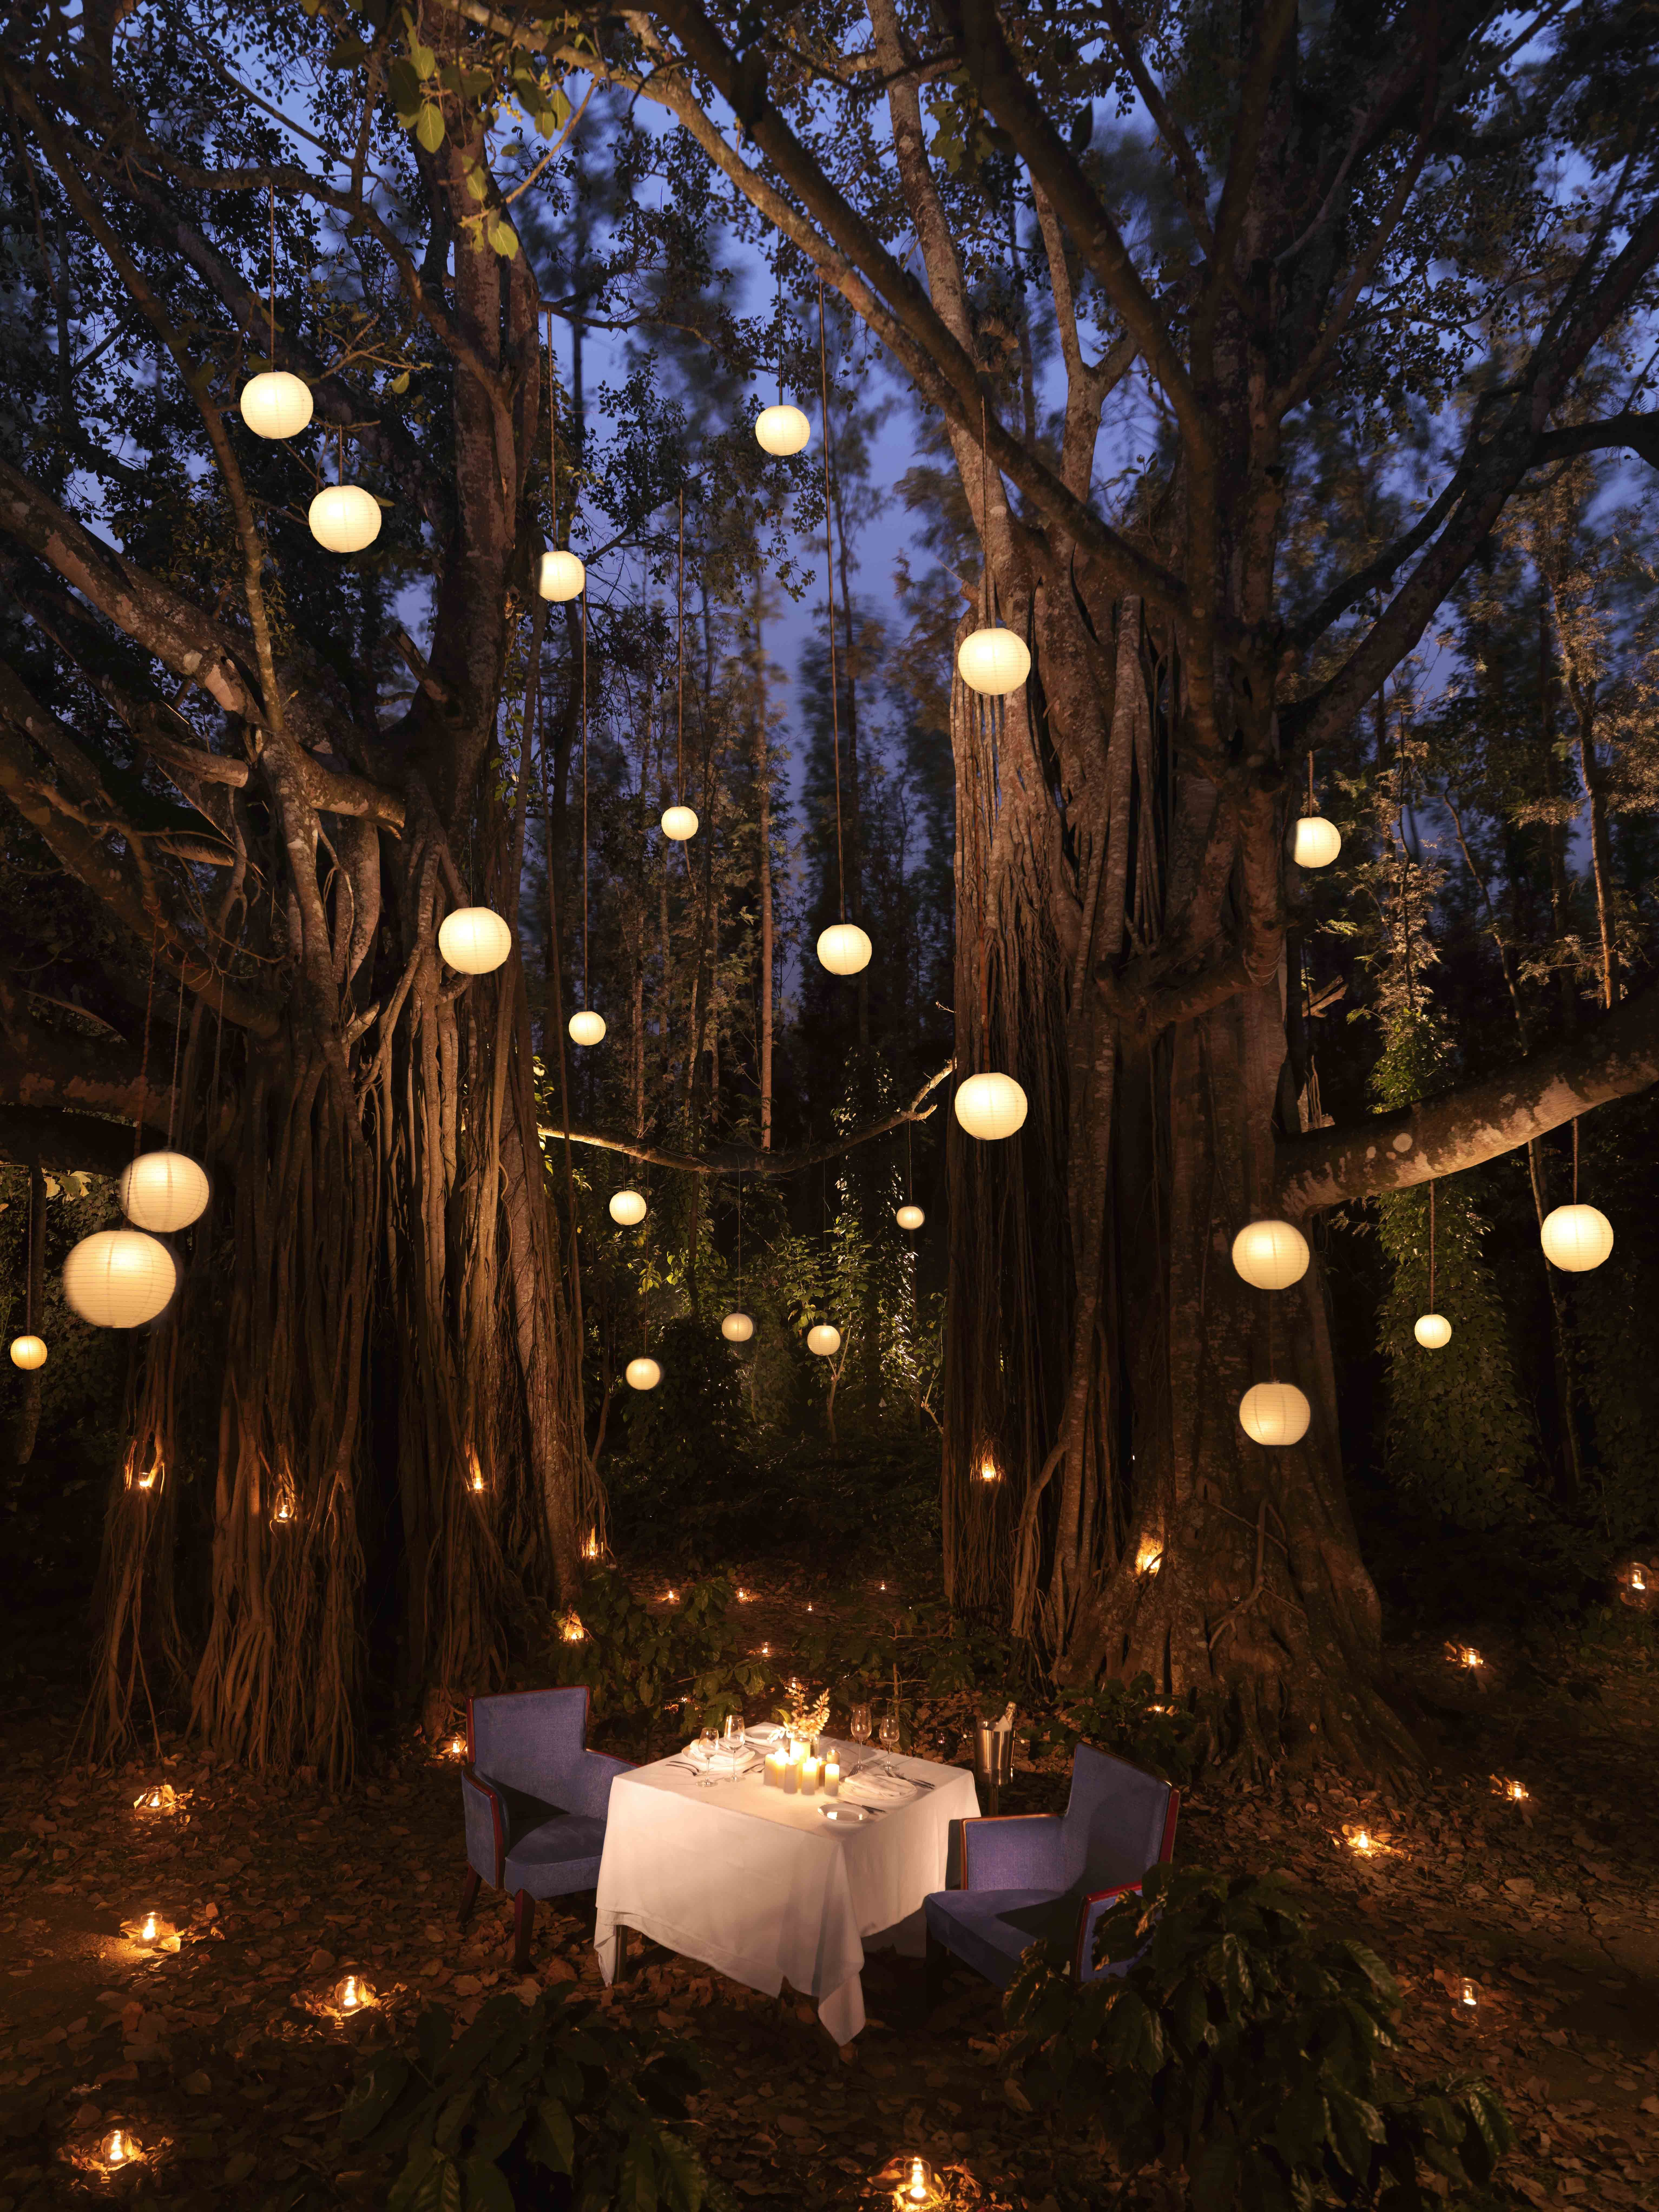 The Magic Of Those Moments Romantic Backyard Summer Outdoor Party Dream Dates